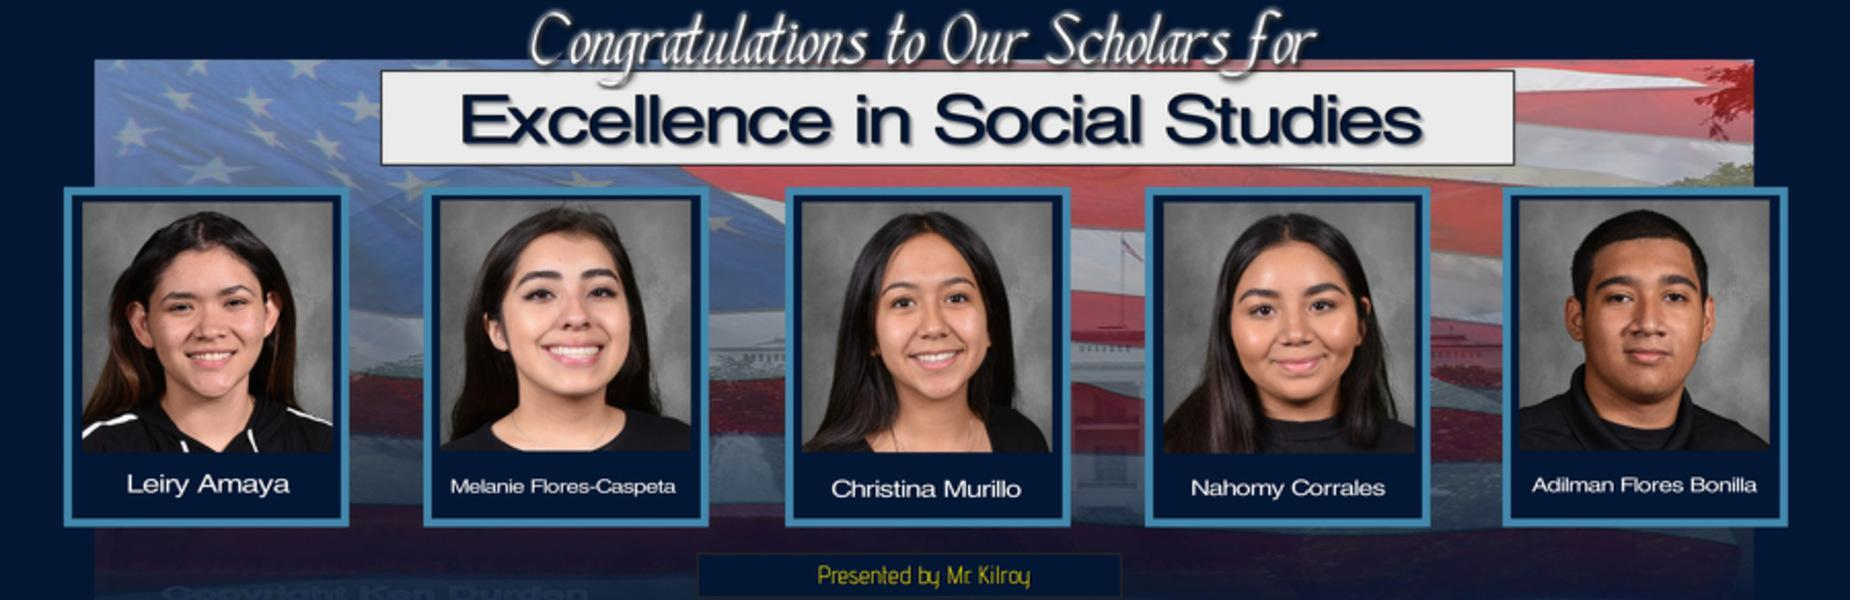 Social Studies Awards 2020